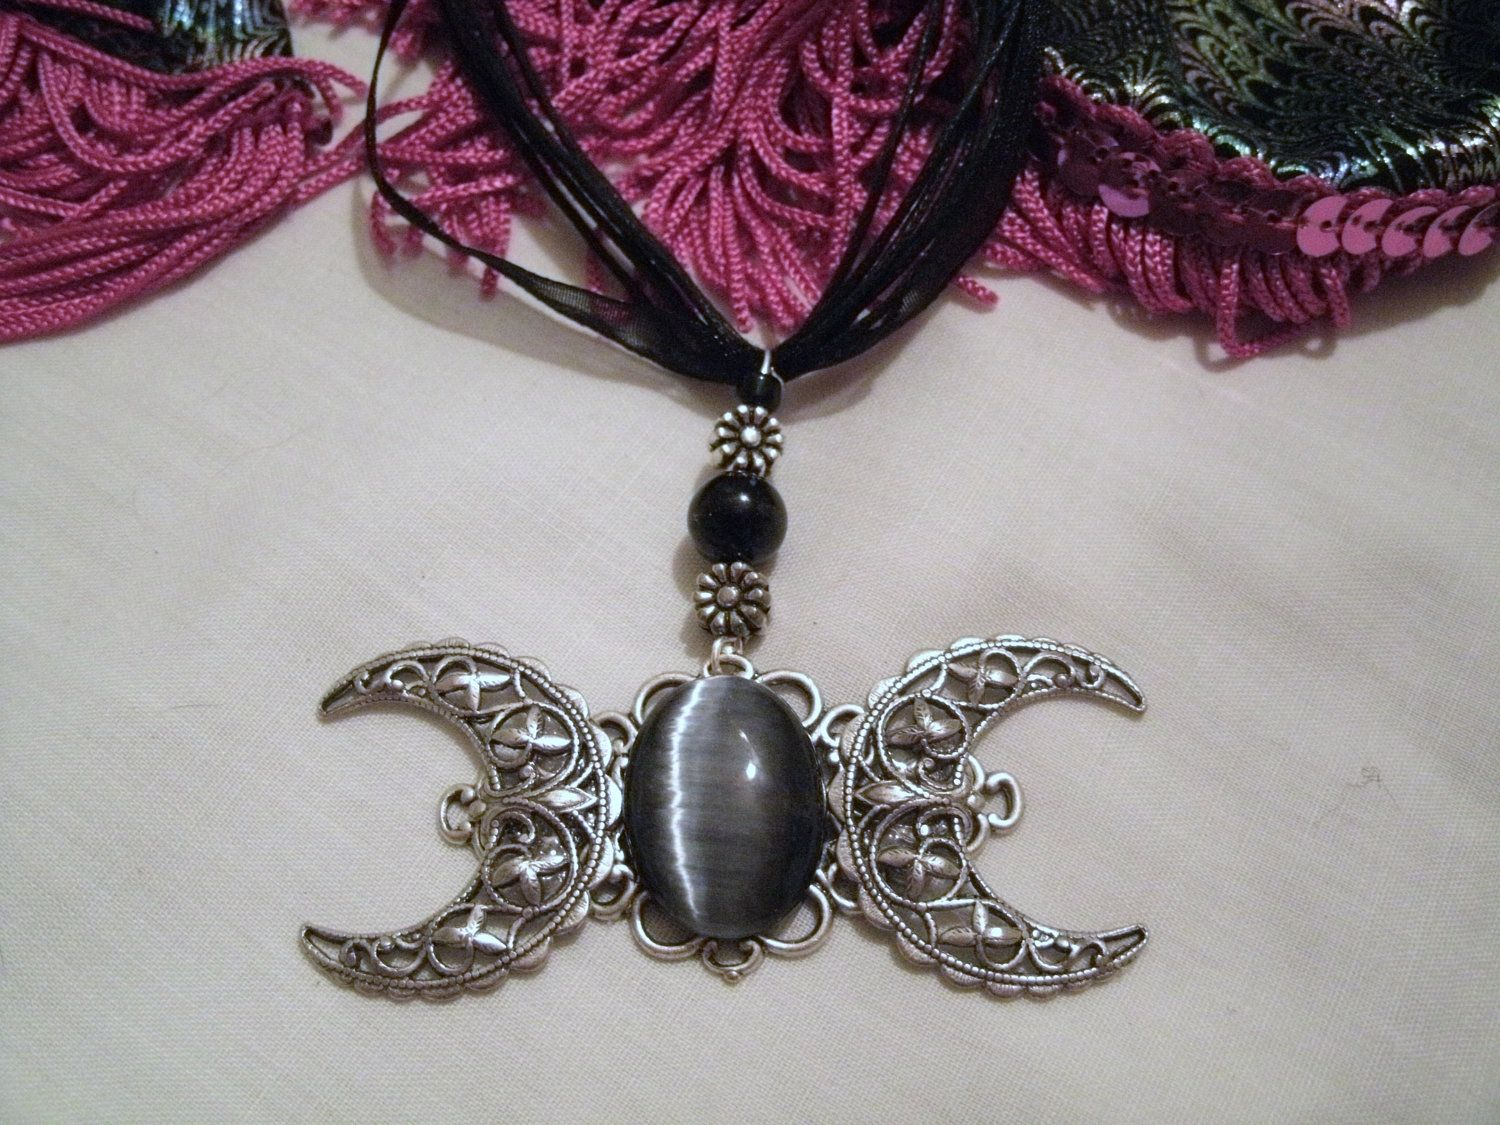 triple necklace choker moon glass wiccan from pentagram pagan locket product jewelry goddess memories photo frame pendant magic pentacle